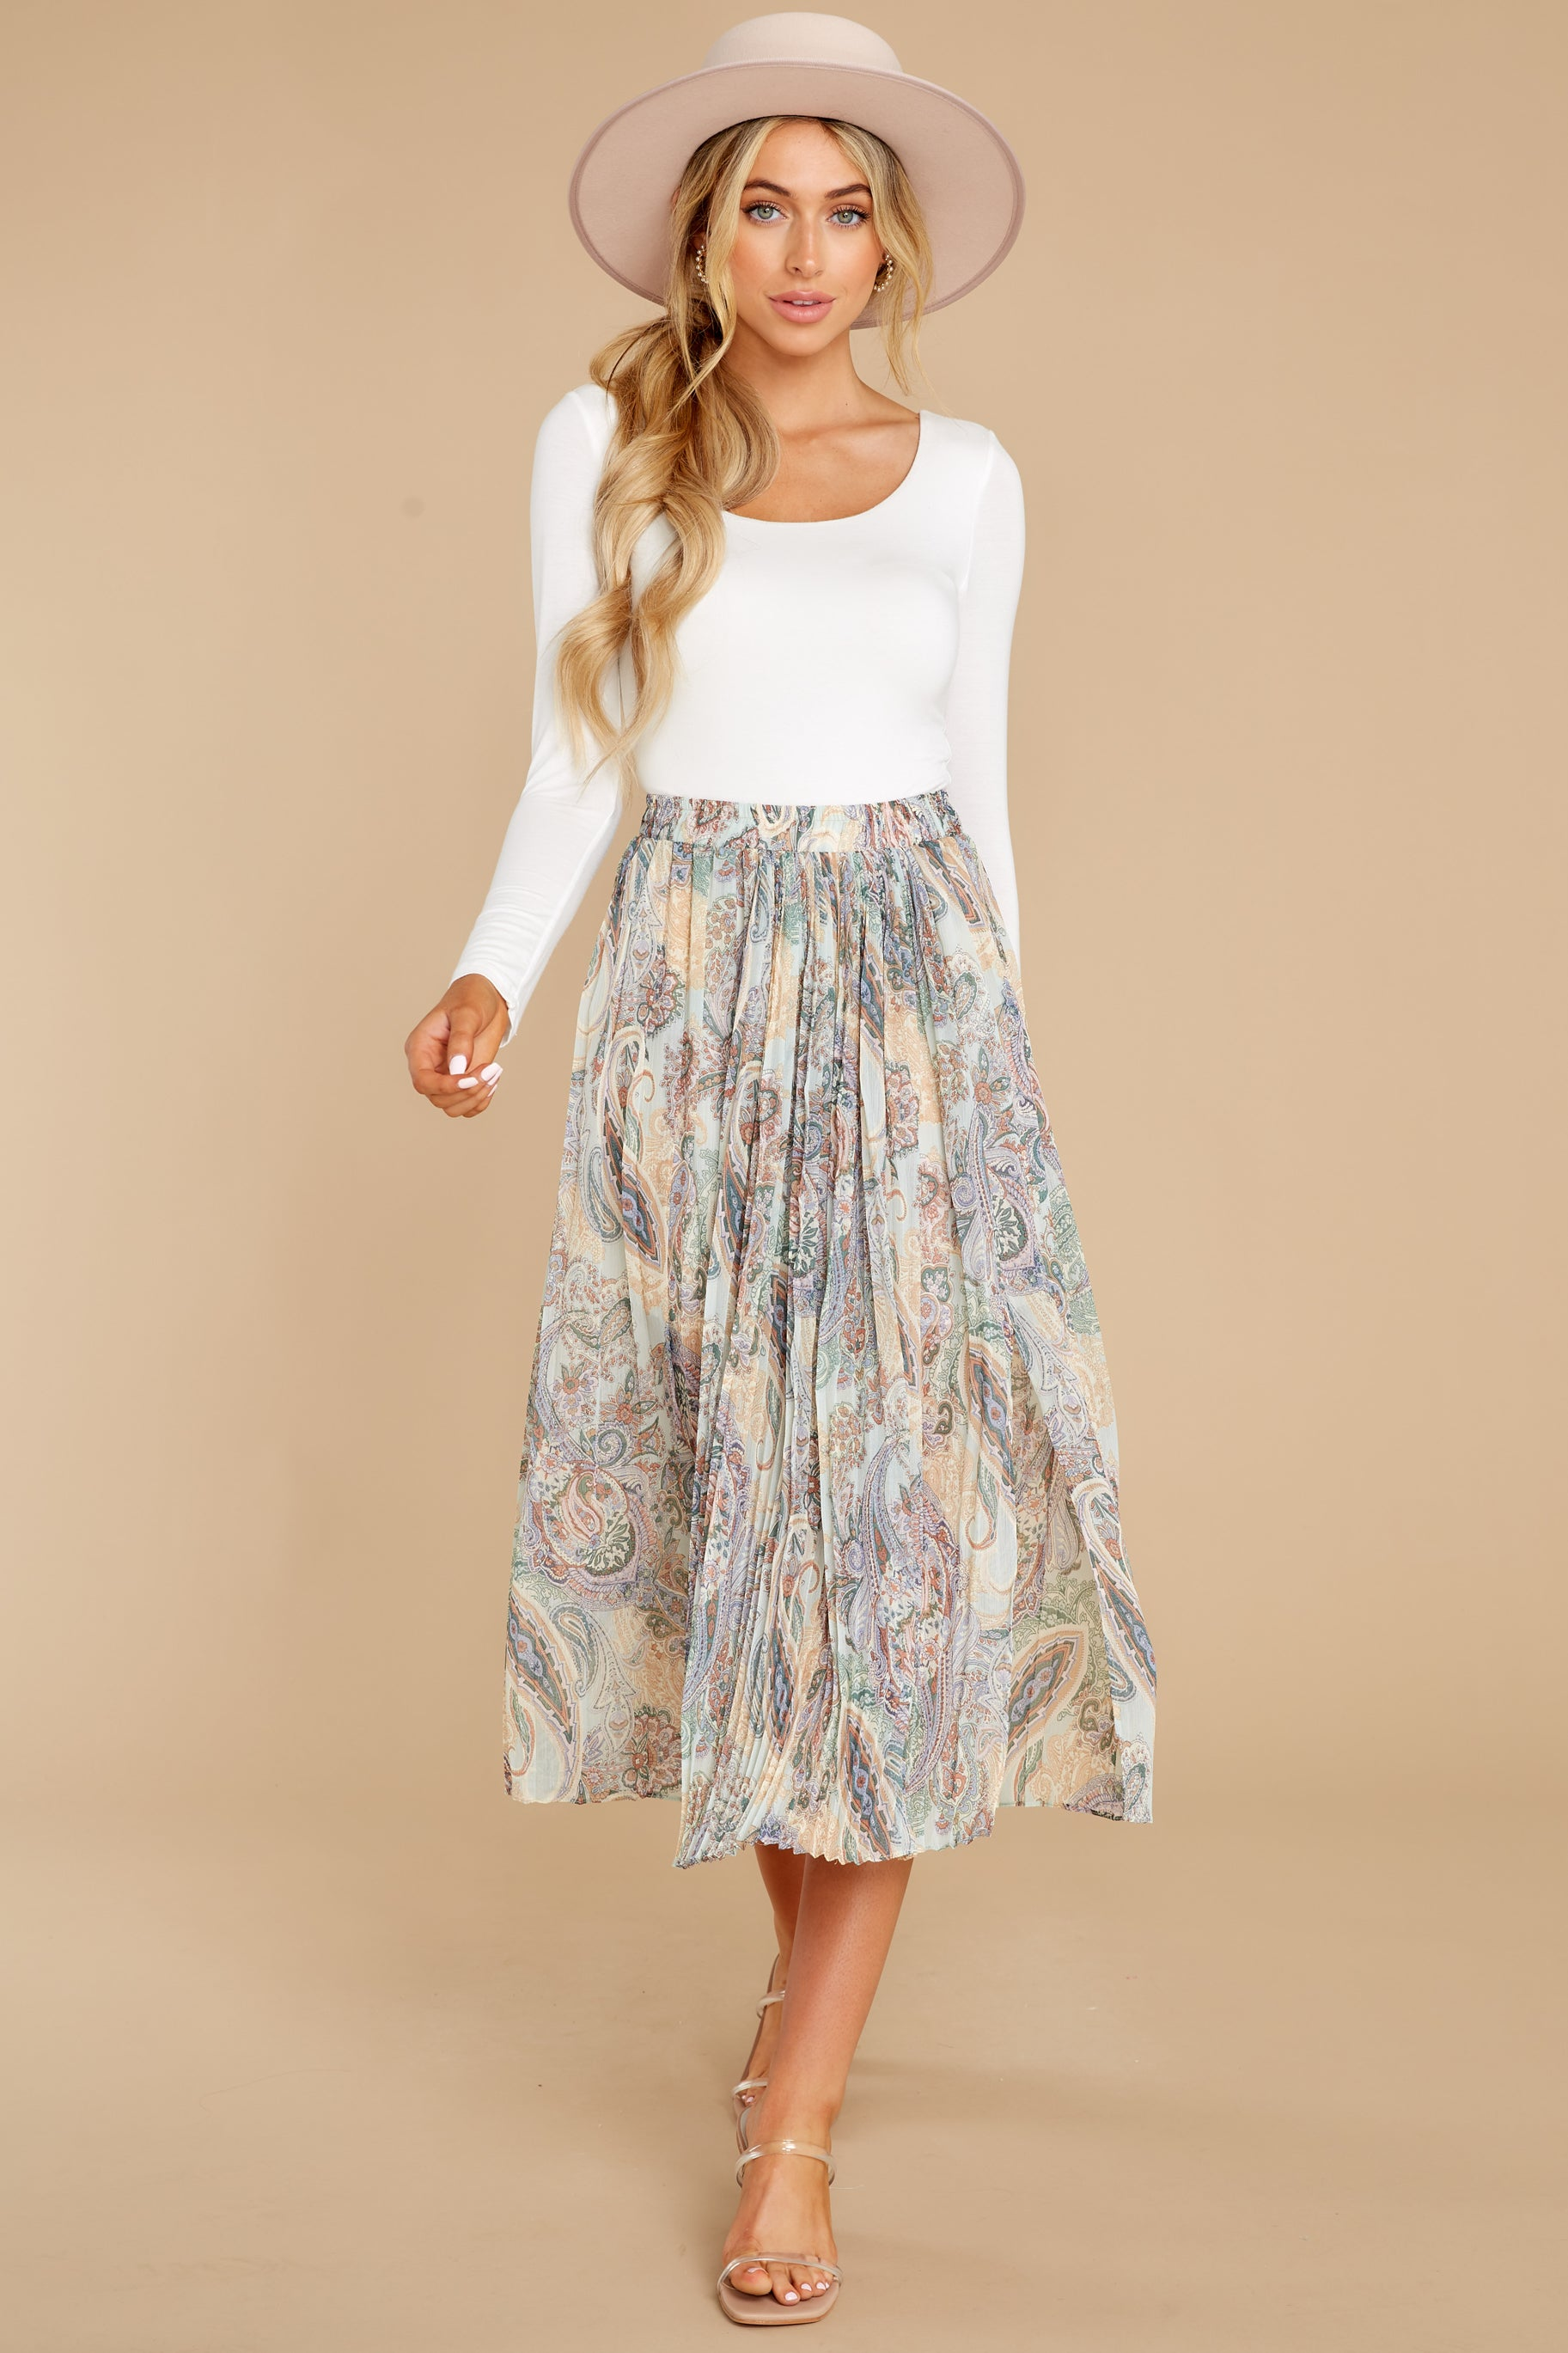 5 In Another Life Mint Paisley Print Midi Skirt at reddress.com